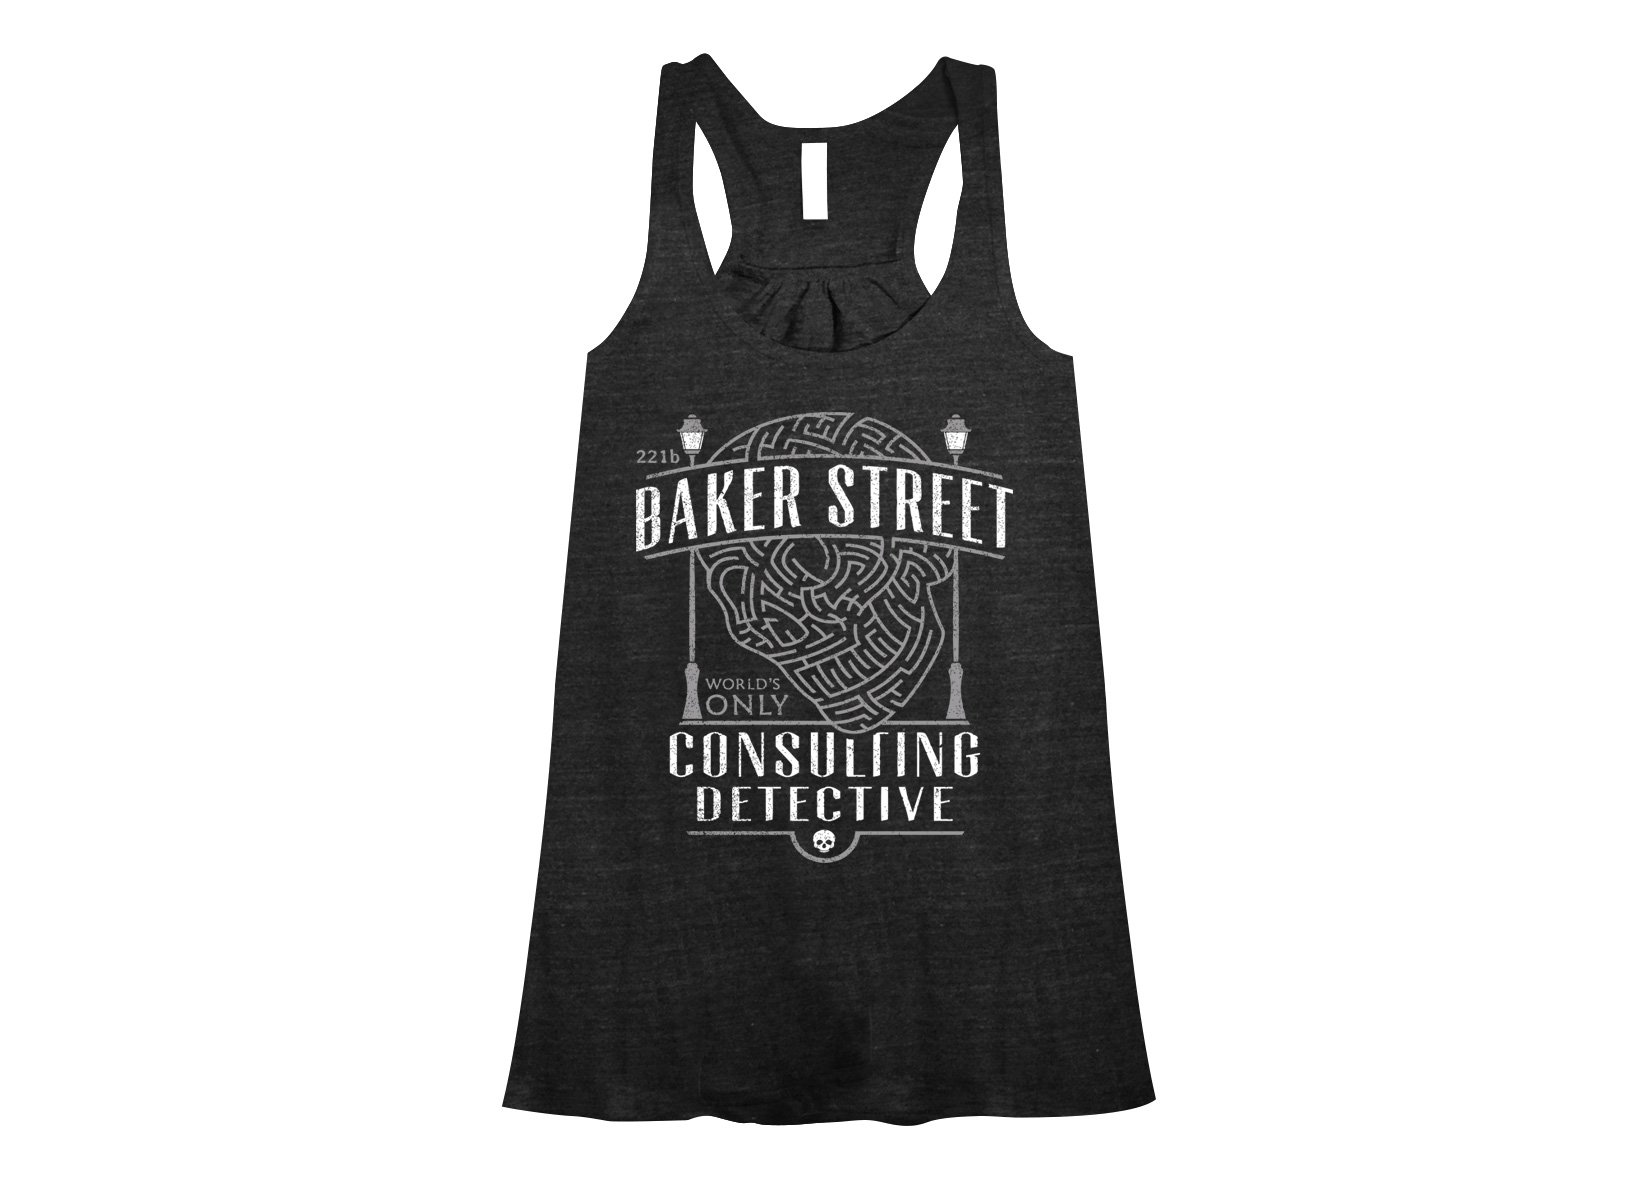 Baker Street Consulting Detective on Womens Tanks T-Shirt